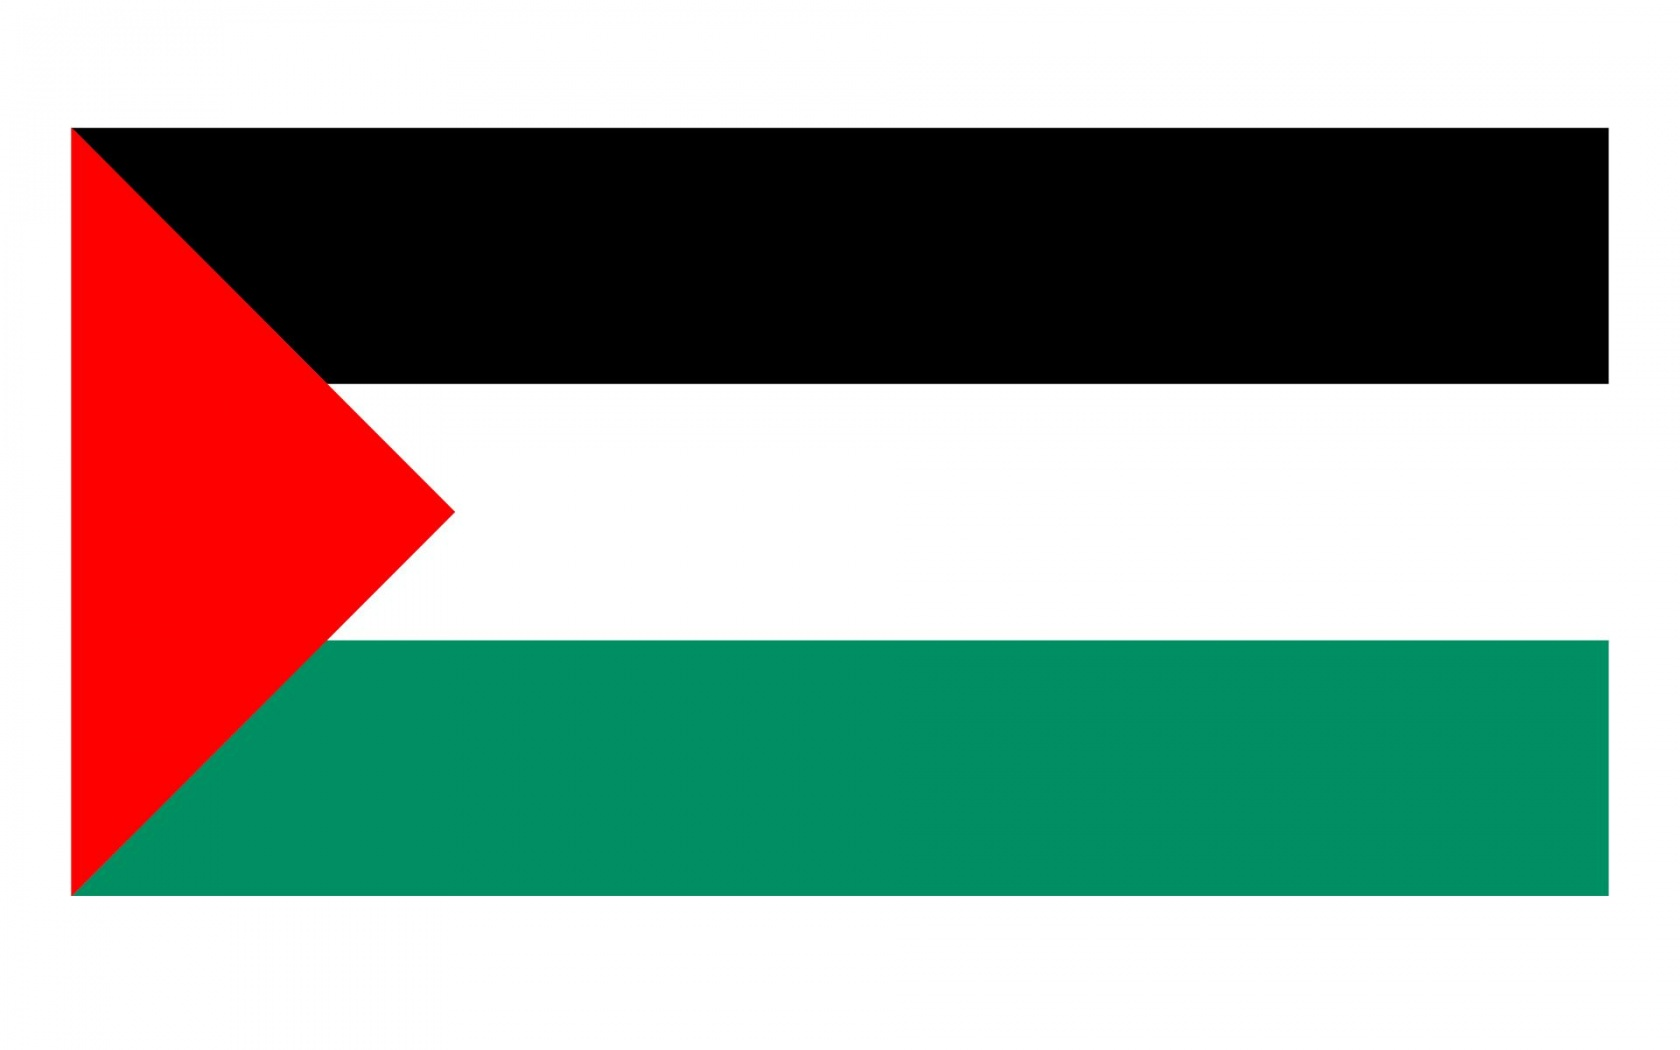 Palestine Flag 021png desktop wallpapers and stock photos 1680x1050